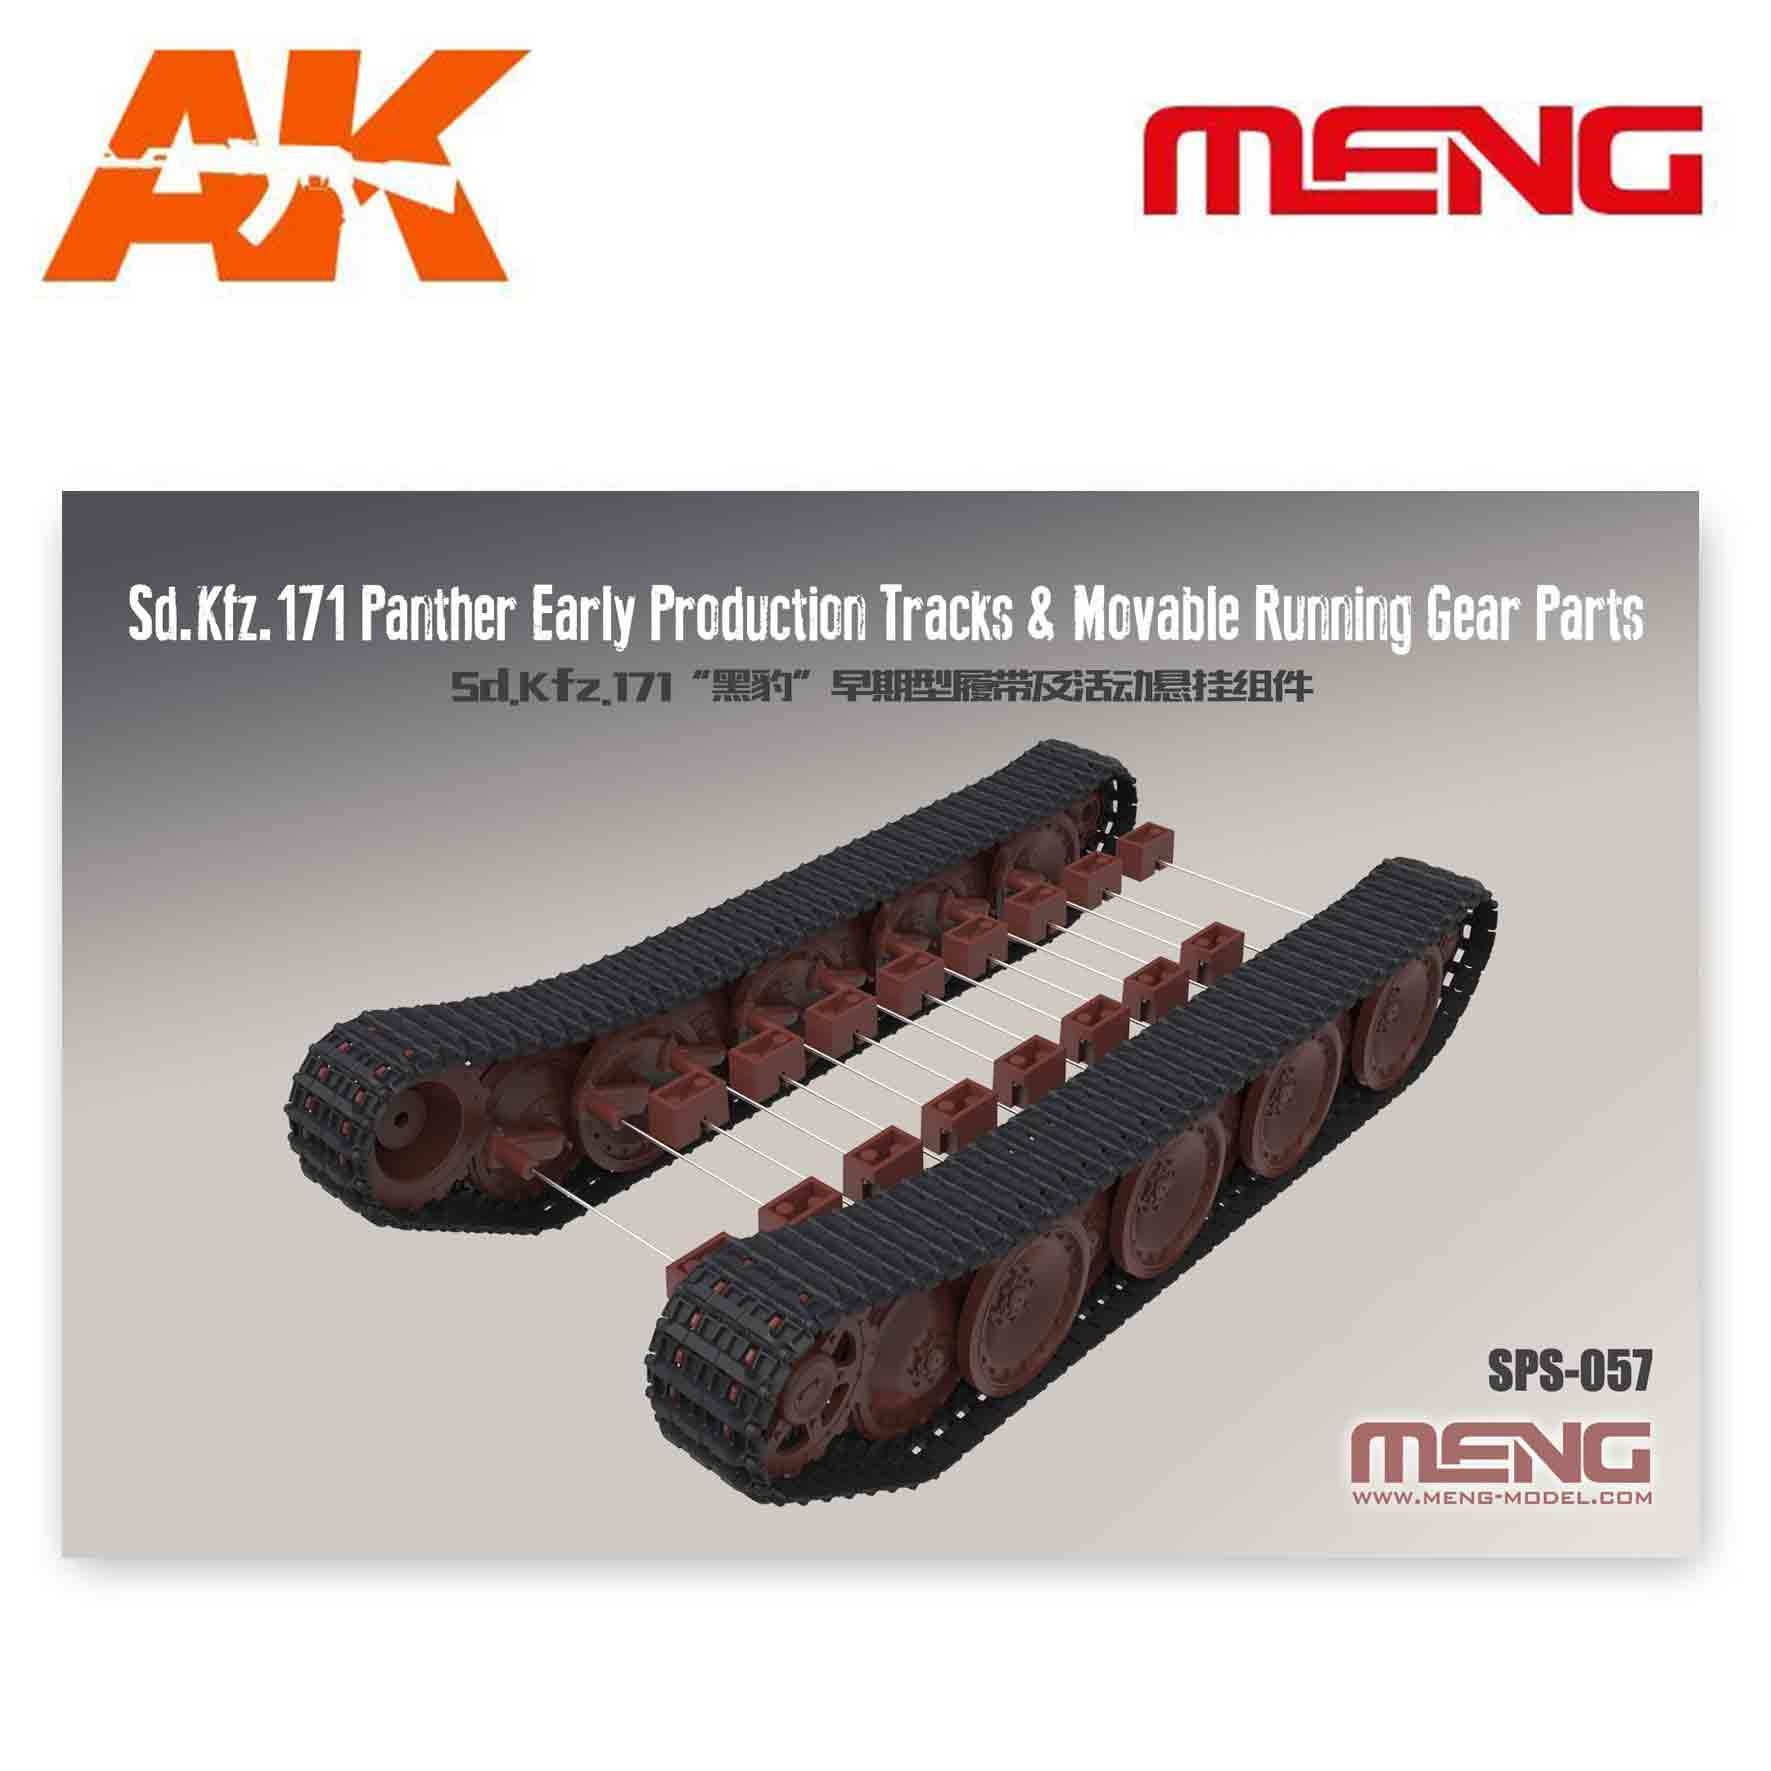 Meng Models German Medium Tank Sd.Kfz.171 Panther Early Production Tracks & Movable Running Gear Parts - Scale 1/35 - Meng Models - MM SPS-057